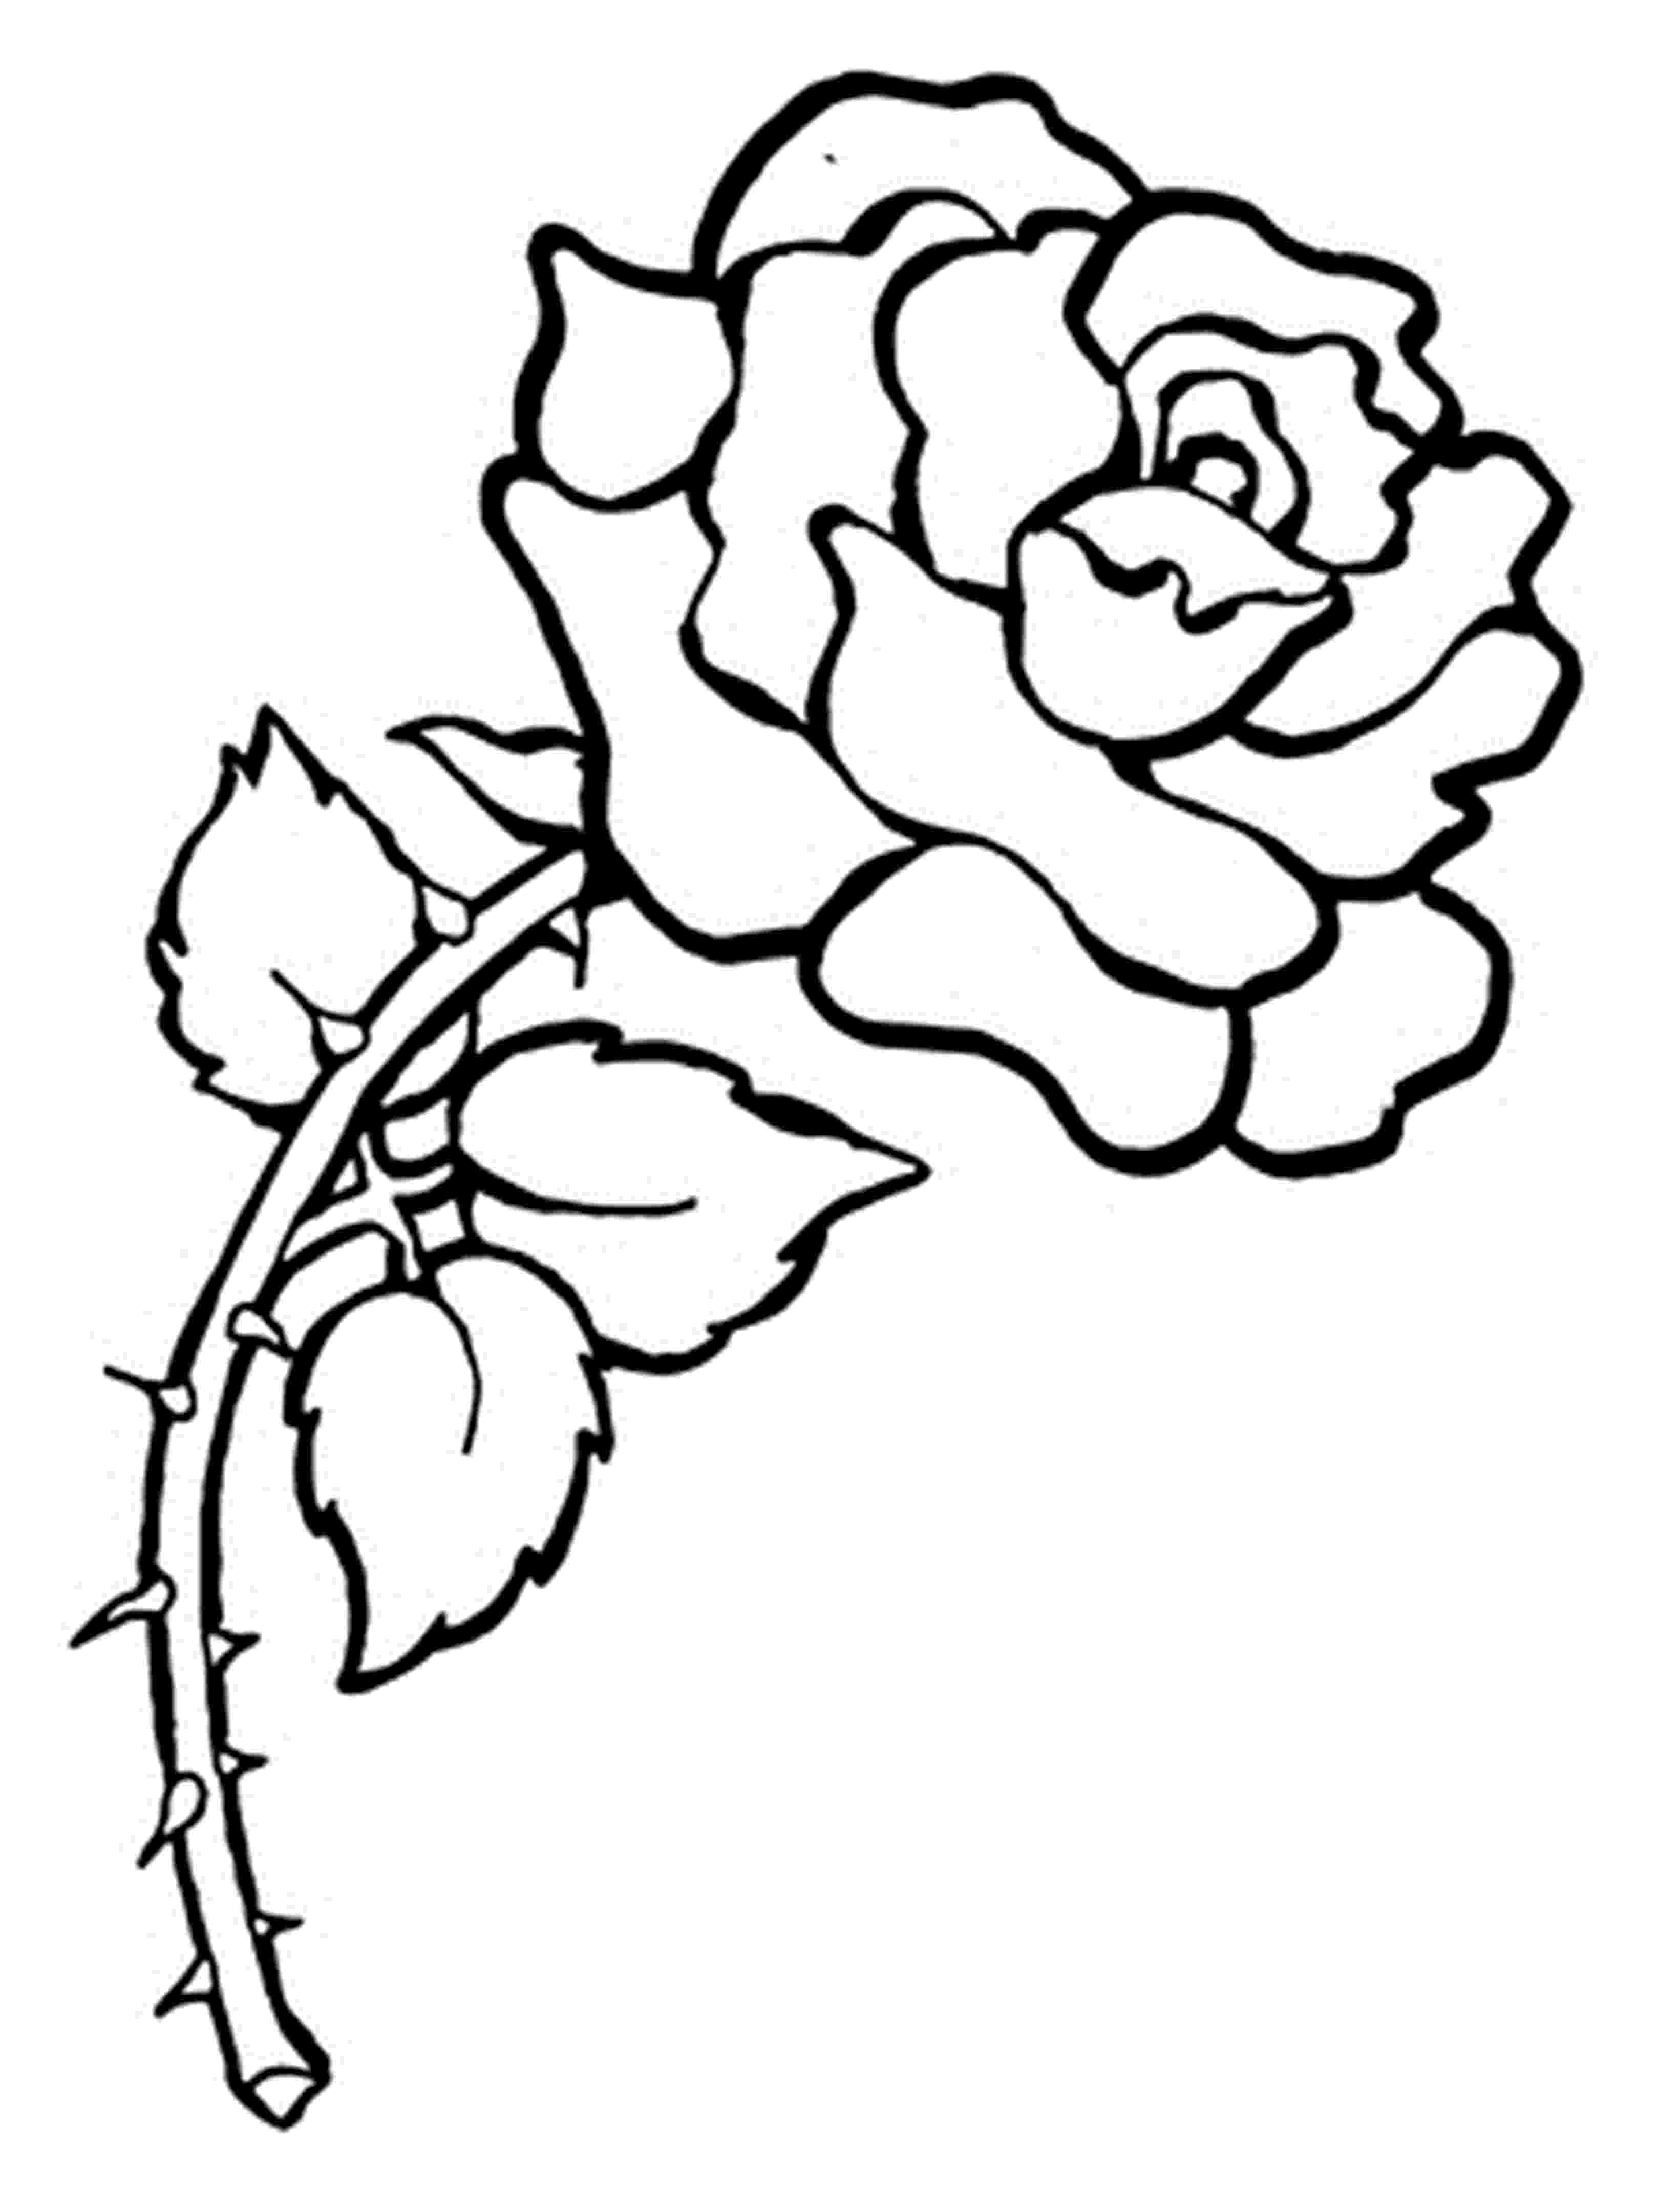 printable roses free printable roses coloring pages for kids printable roses 1 2